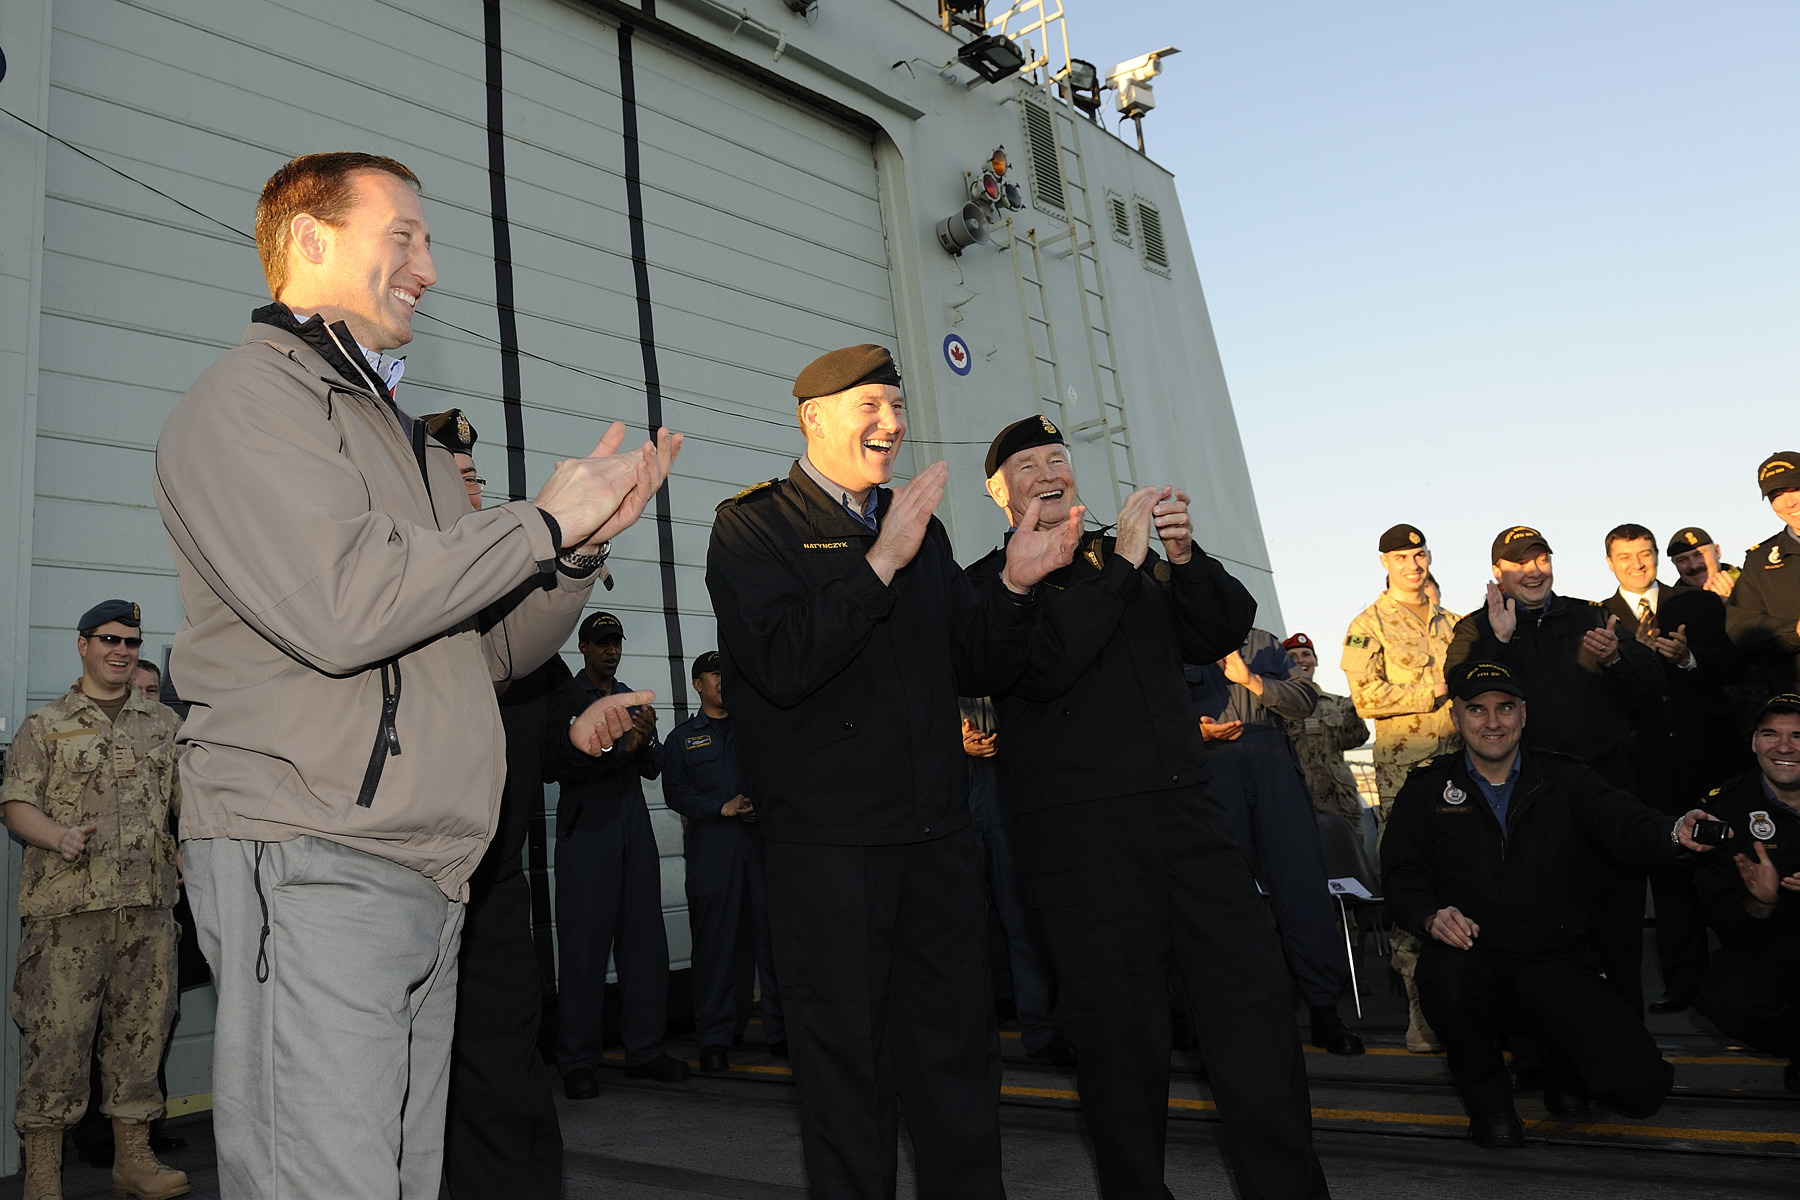 Upon his arrival in Rome, the Governor General (right) visited the HMCS Vancouver, where he met with troops. He was joined by the Honourable Peter MacKay, Minister of National Defence (left), and General Walt Natynczyk, Chief of the Defence Staff (center).